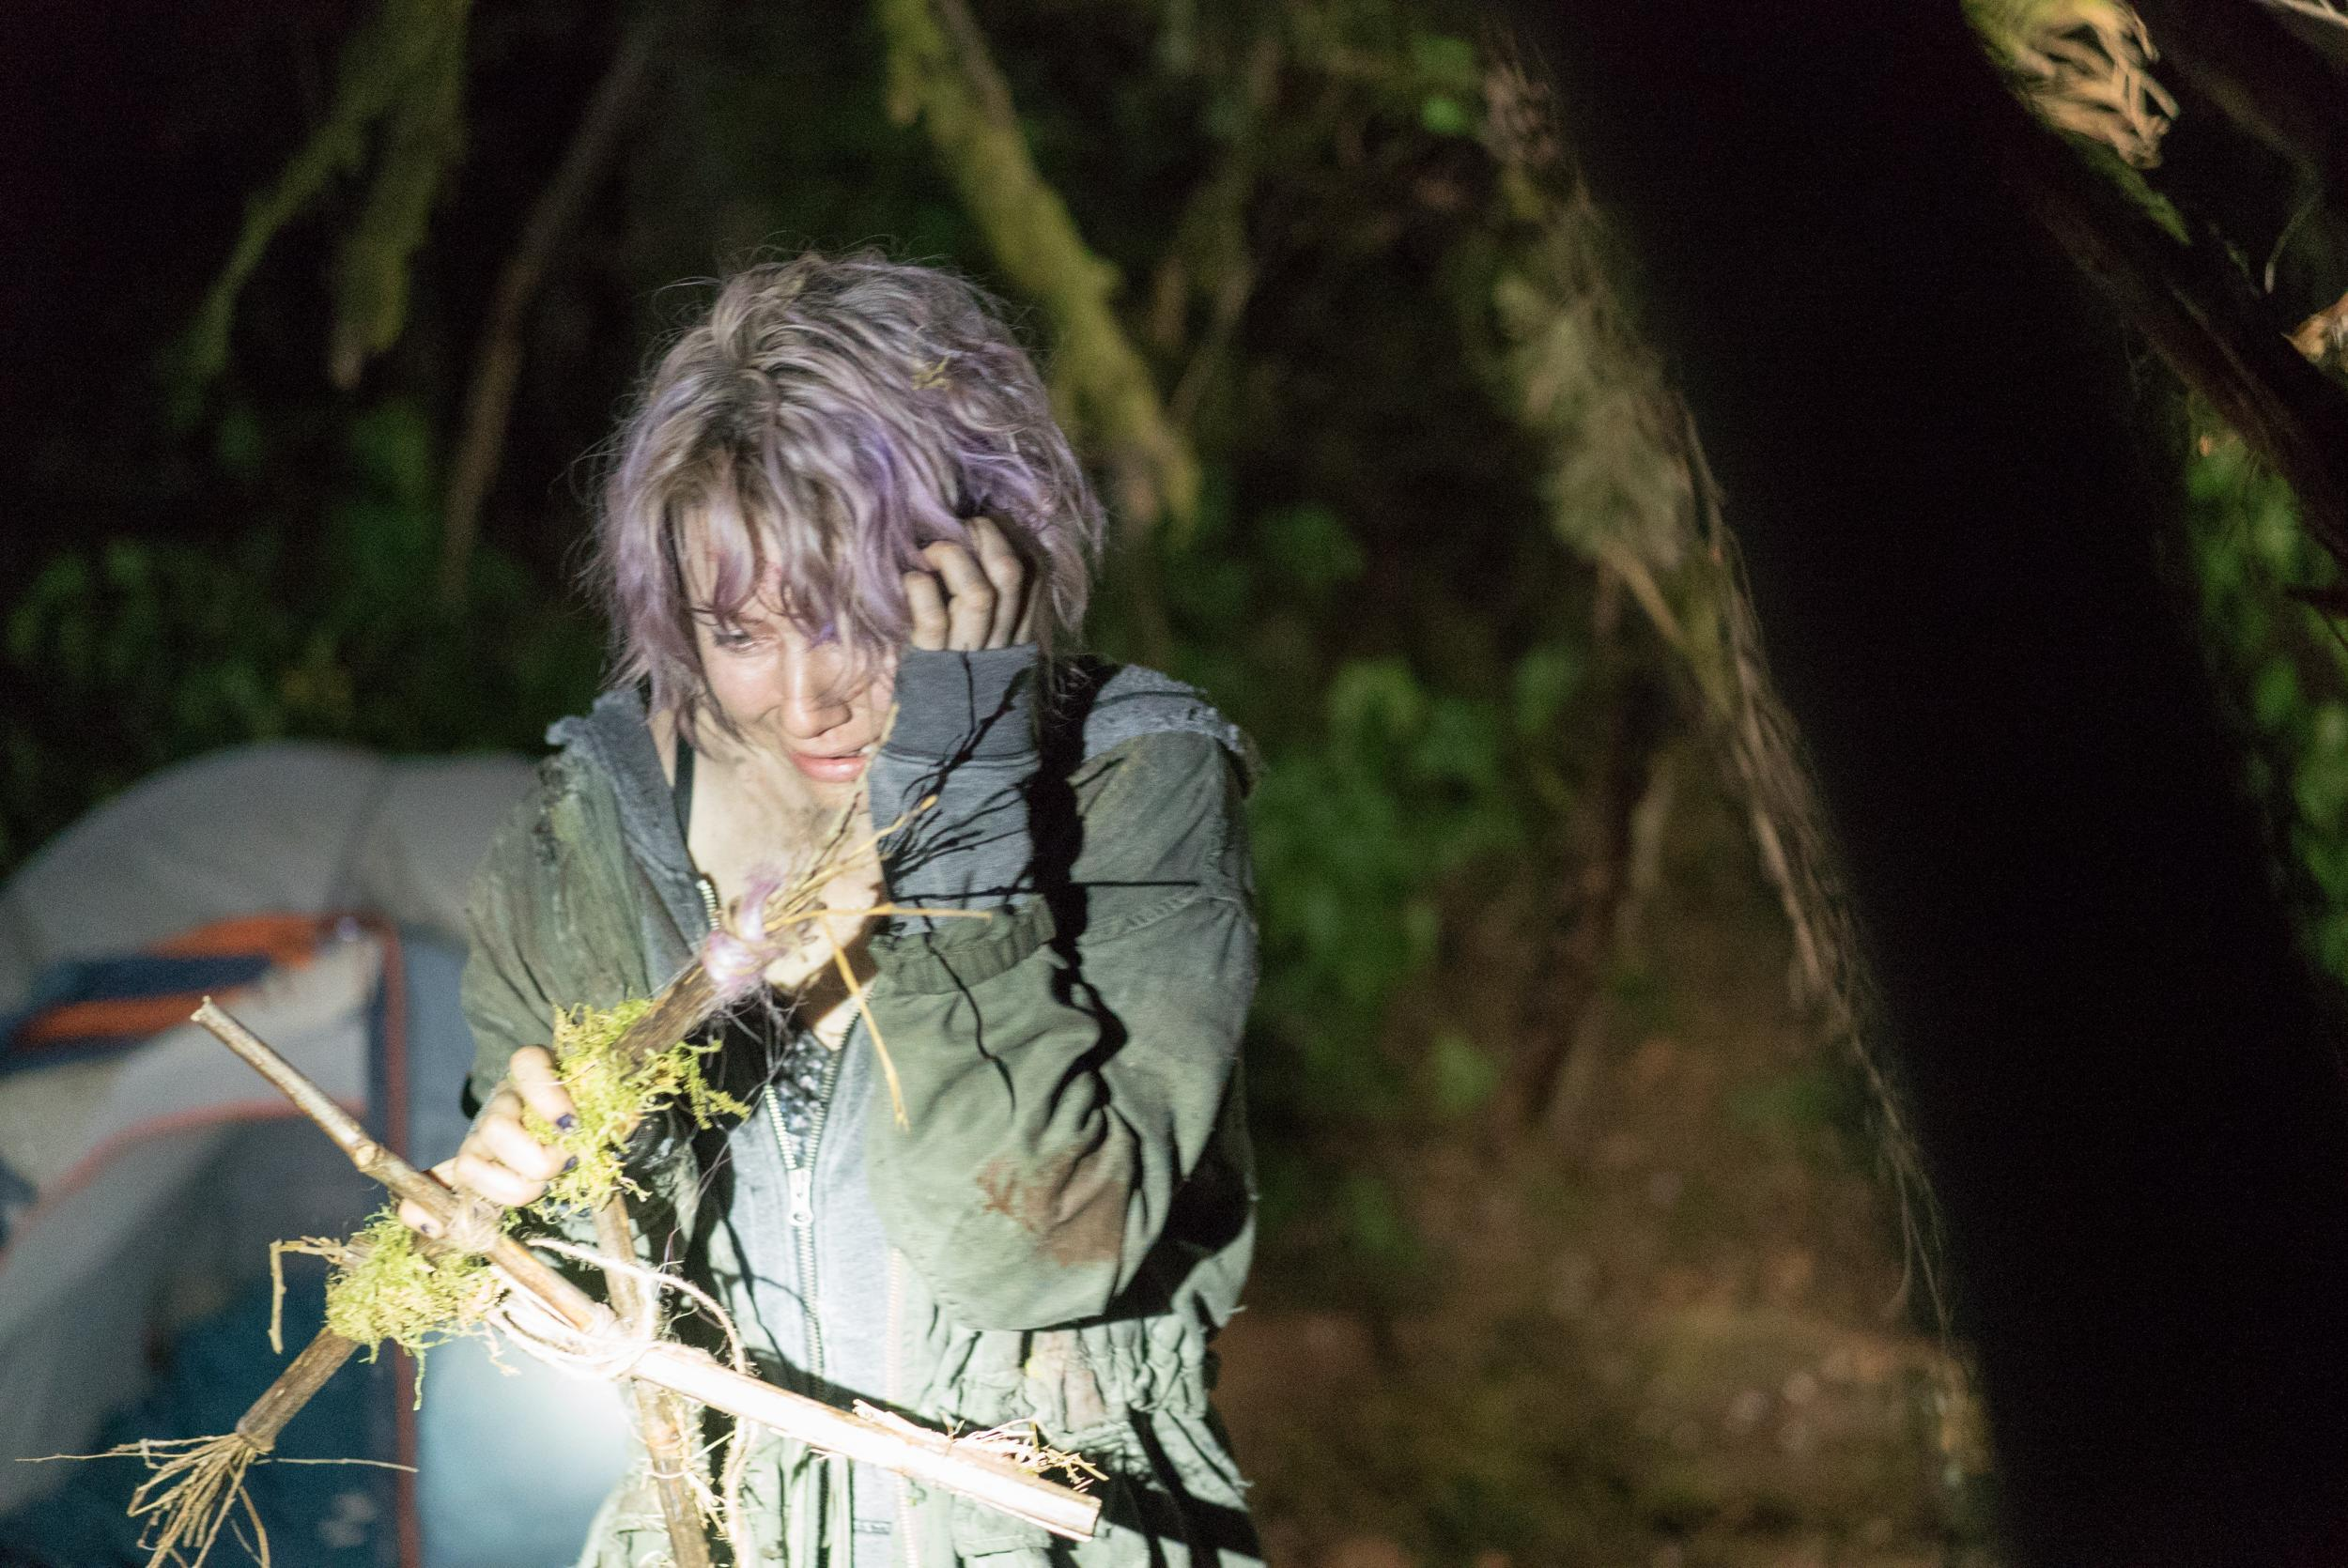 Comic Con 2016: New horror film The Woods revealed to be a secret Blair Witch sequel - watch the trailer